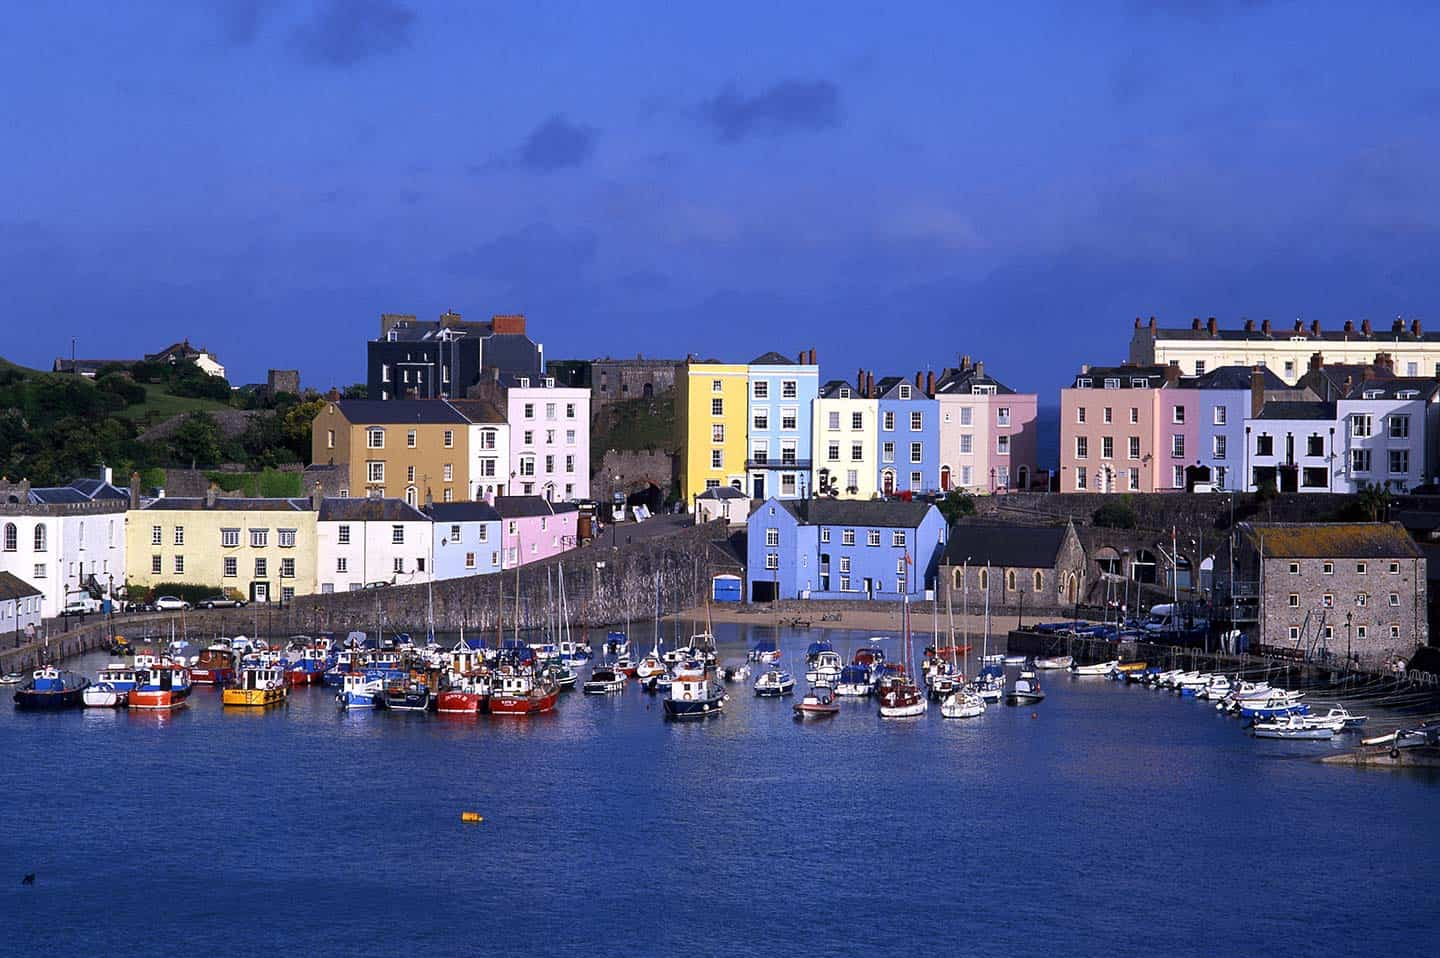 Image of the Harbour in Tenby, Wales